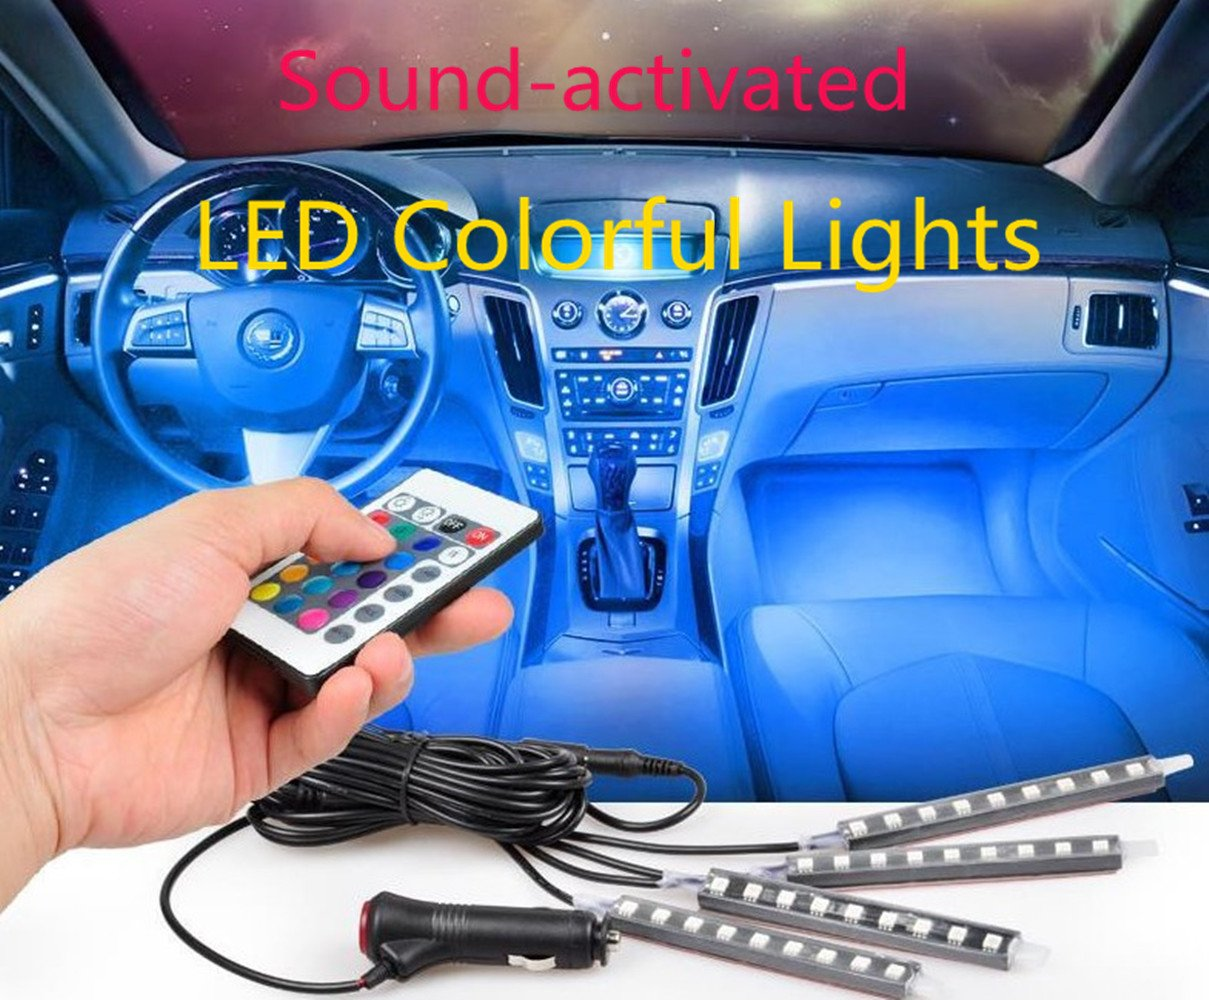 Flexible Car Lights kit Interior Atmosphere LED Lighting LED Interior Underdash Lighting Kit RGB Color Changing Decorative LED Lamp + Music Controller